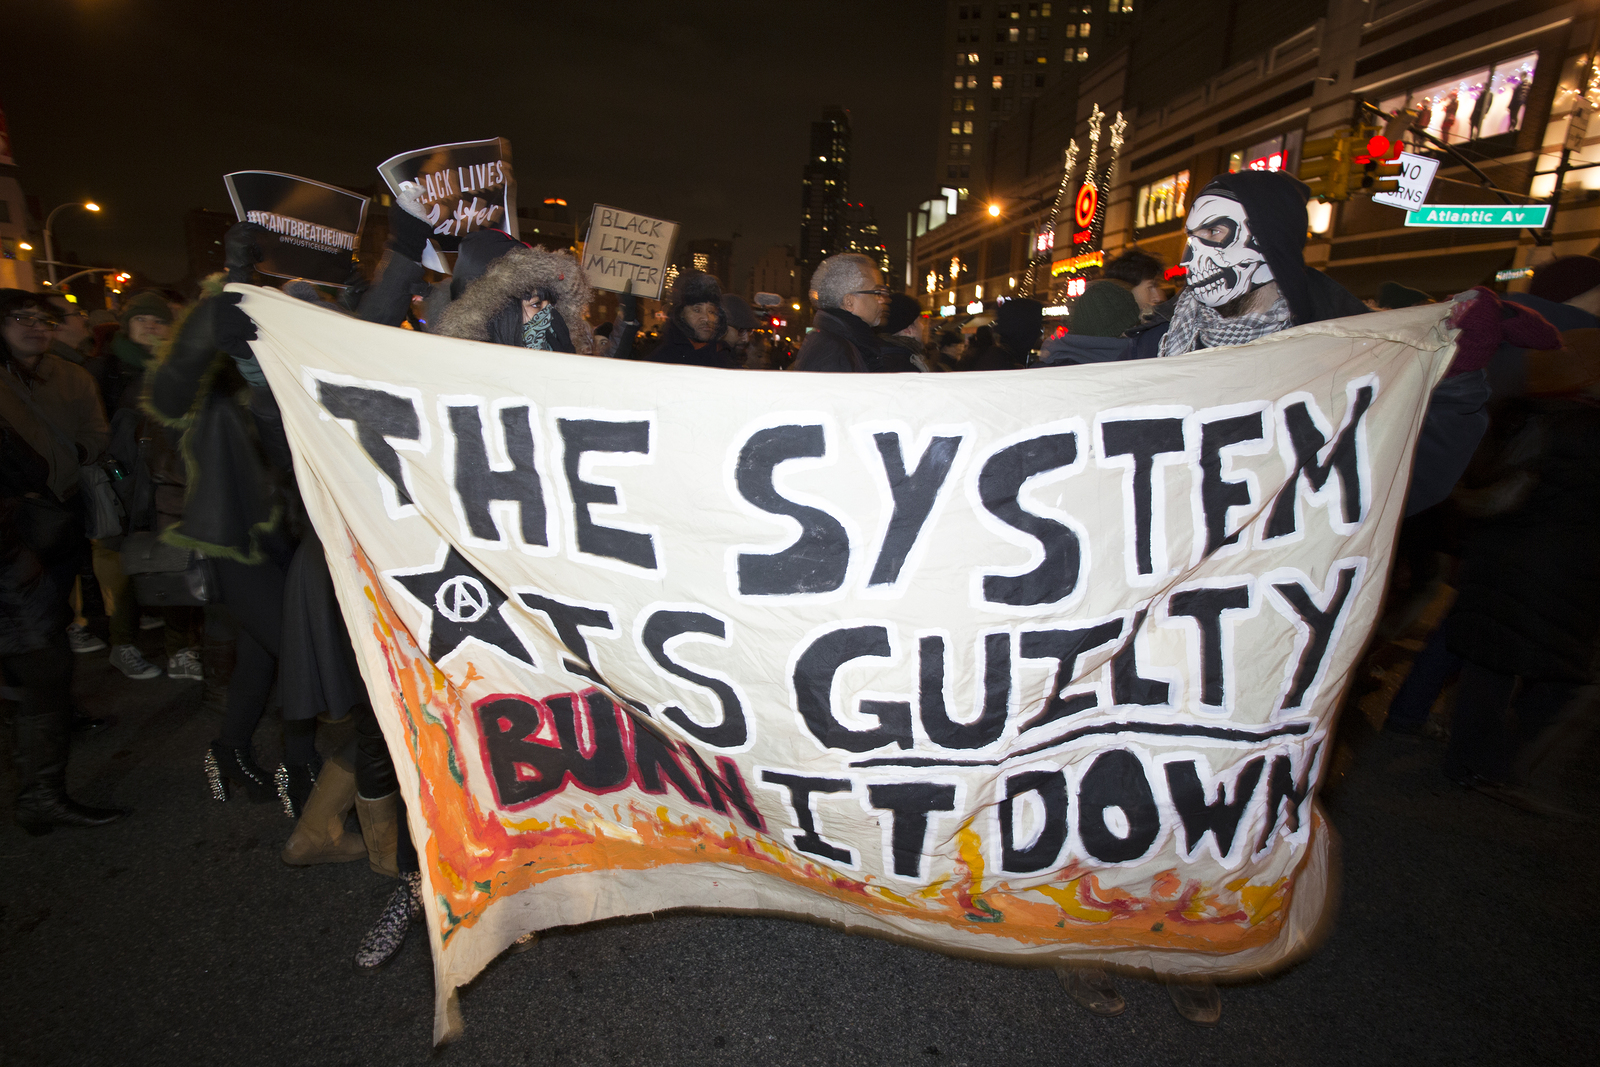 """NEW YORK CITY - DECEMBER 8 2014: several hundred demonstrators filled Barclay's Center during a visit by the Duke & Duchess of Cambridge in a """"Shut it down!"""" protest against alleged police brutality."""